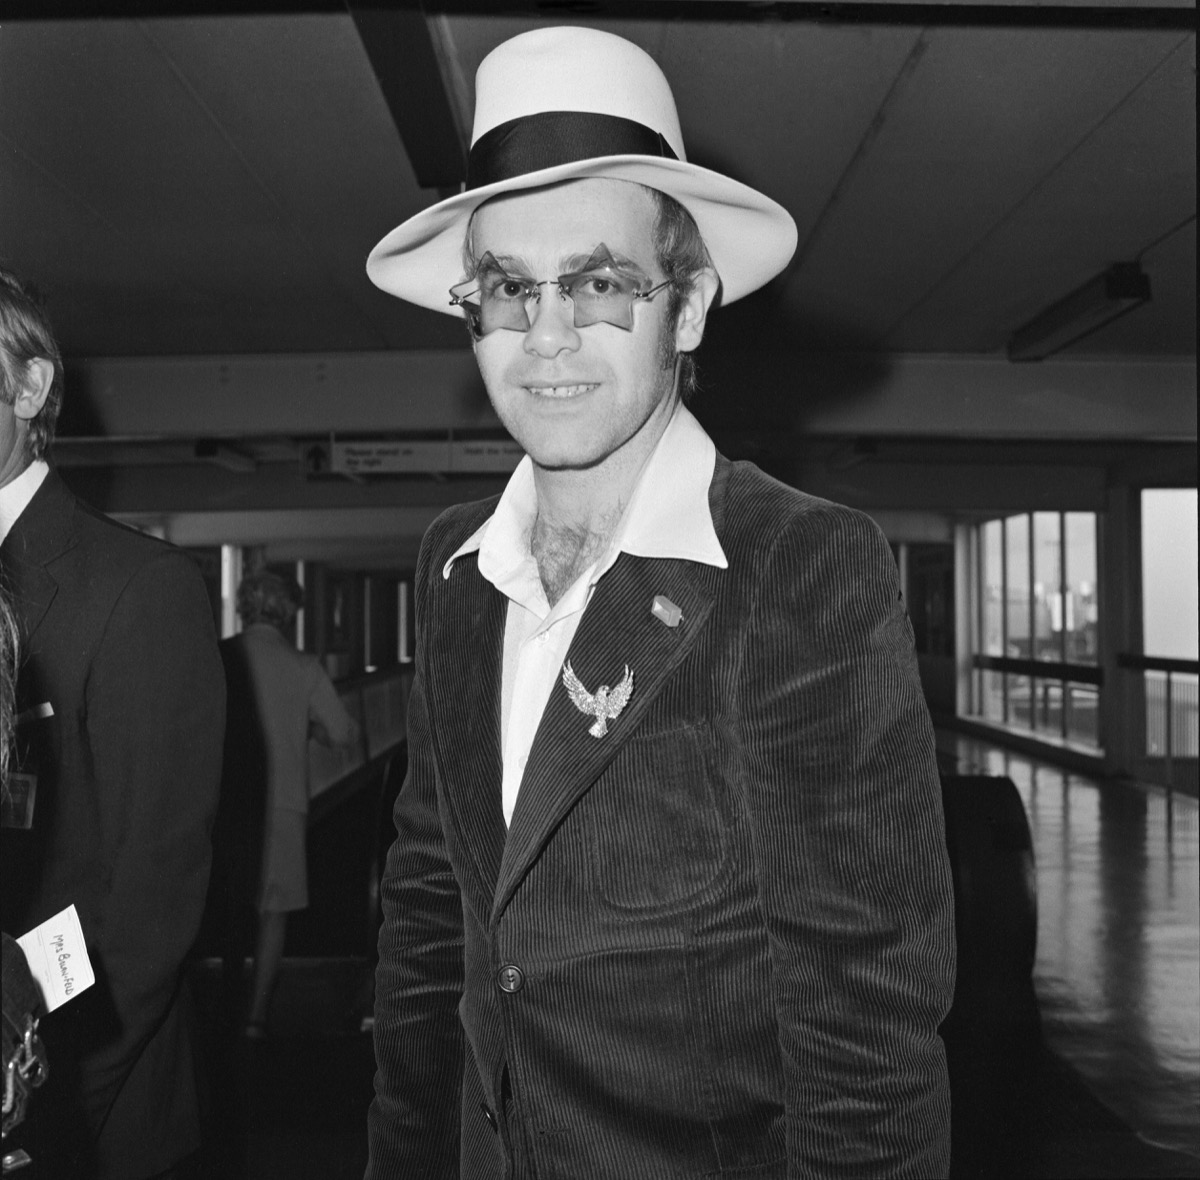 Elton John leaves Heathrow Airport. He is going to Los Angeles for the party of Elton John's Manager. Picture taken 9th September 1974